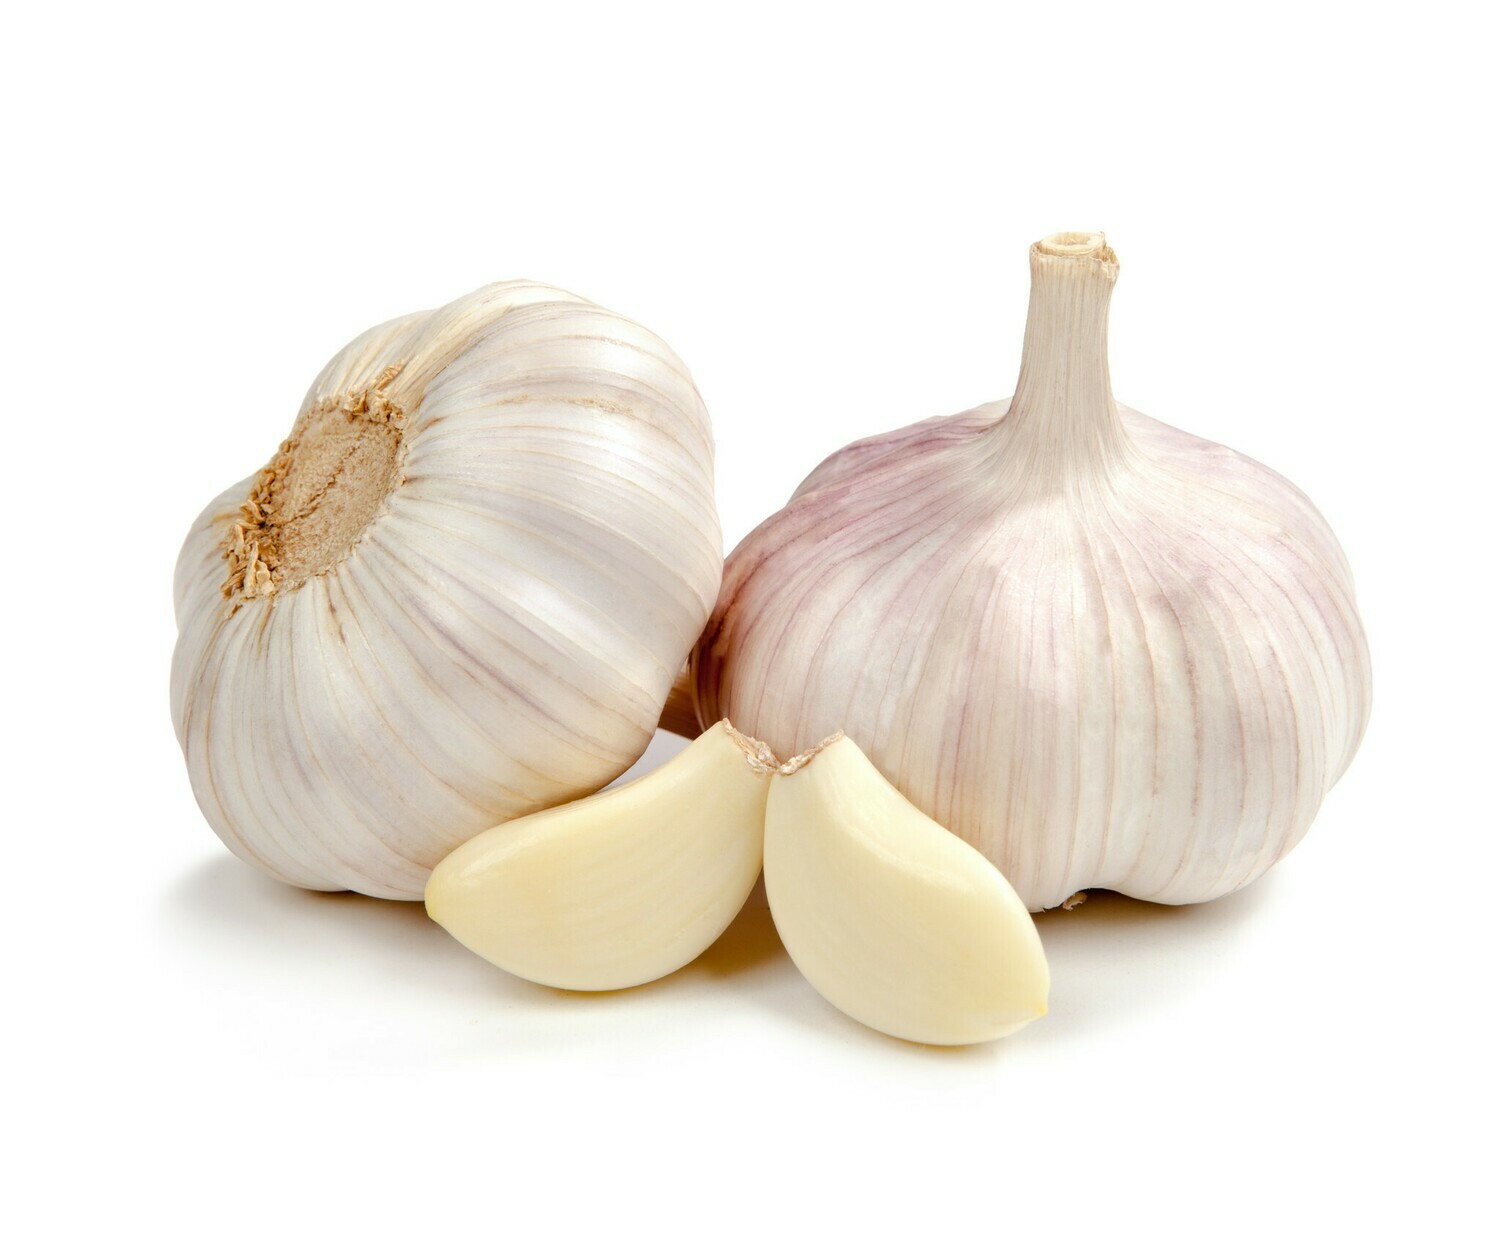 ORGANIC Garlic 180g Bag